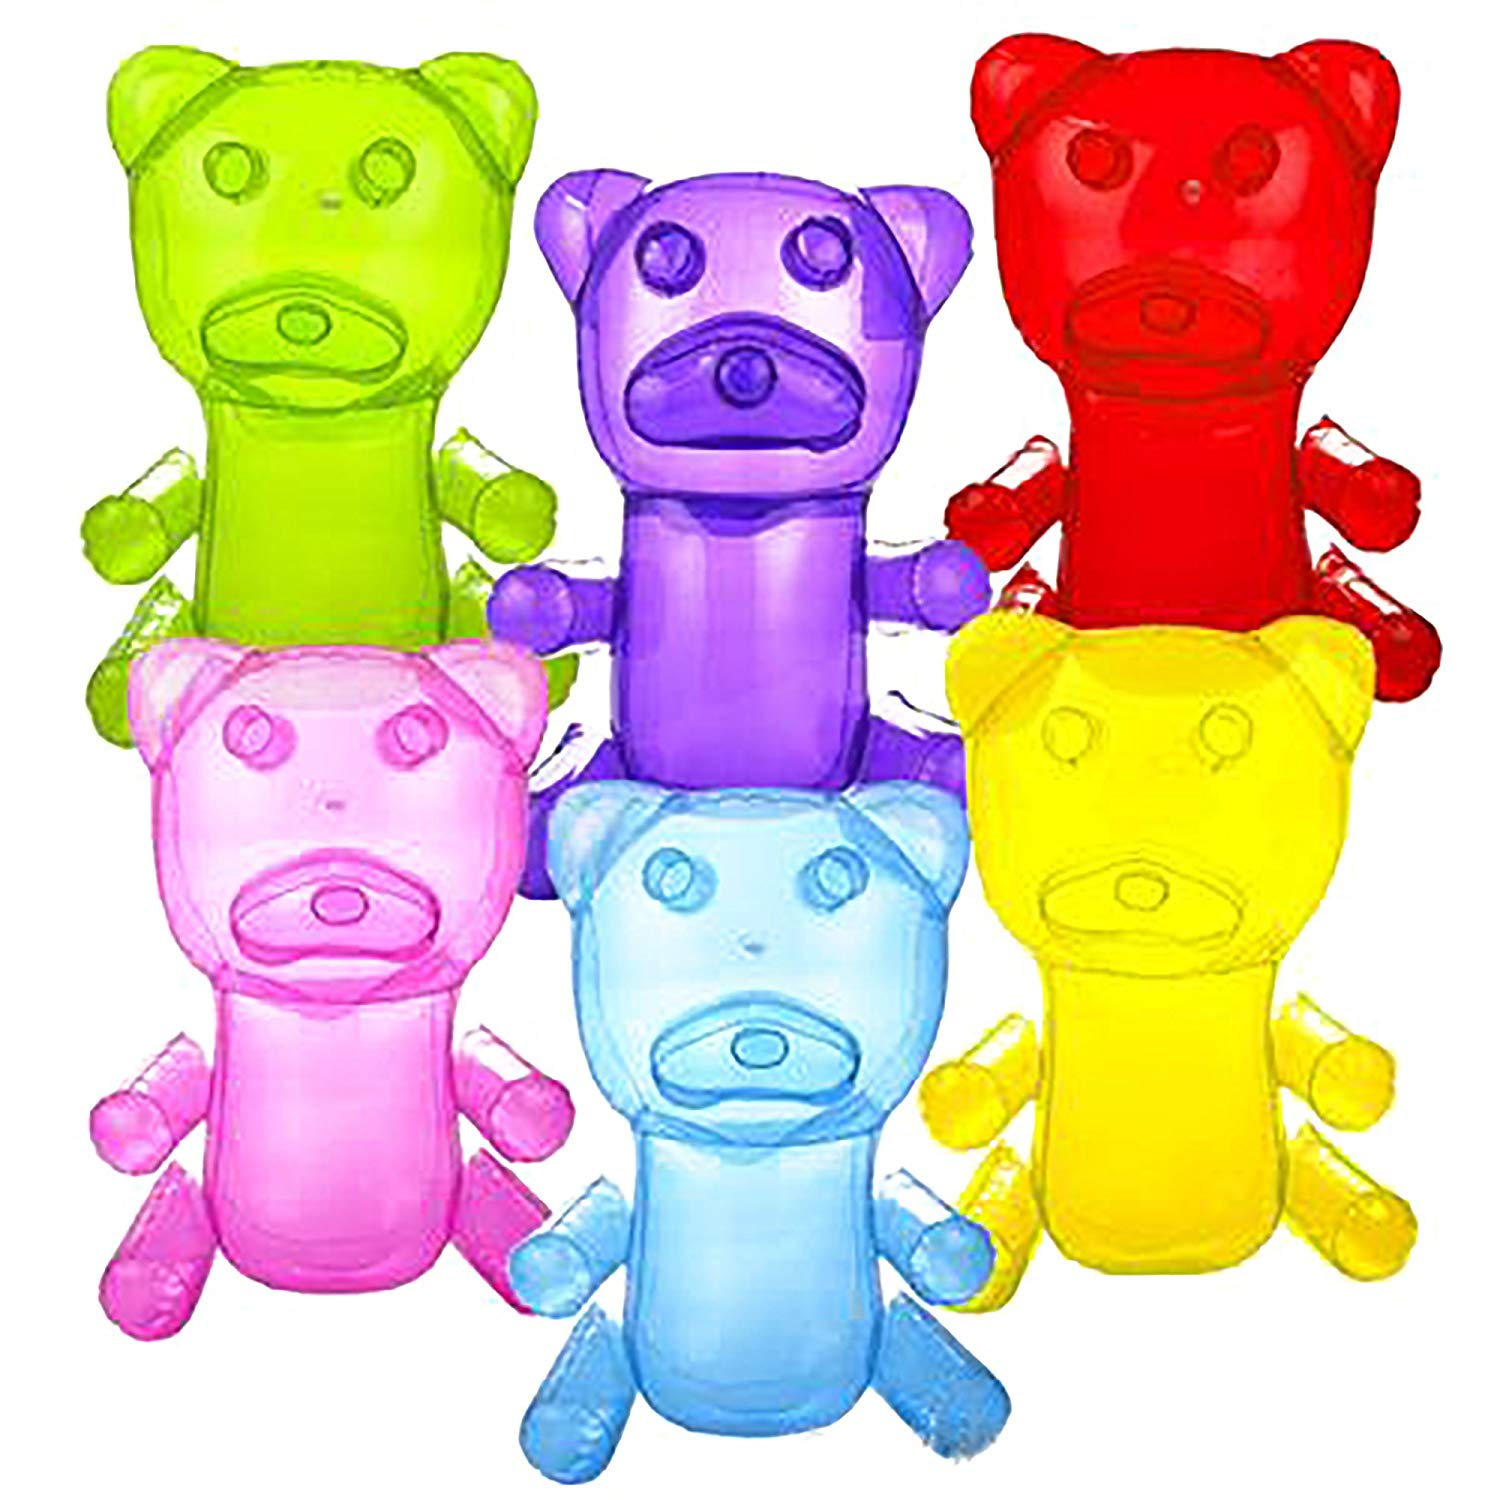 Inflatable Gummy Bears in Assorted Colors for Party Decorations - 18 Inch Gummy Bears (6)